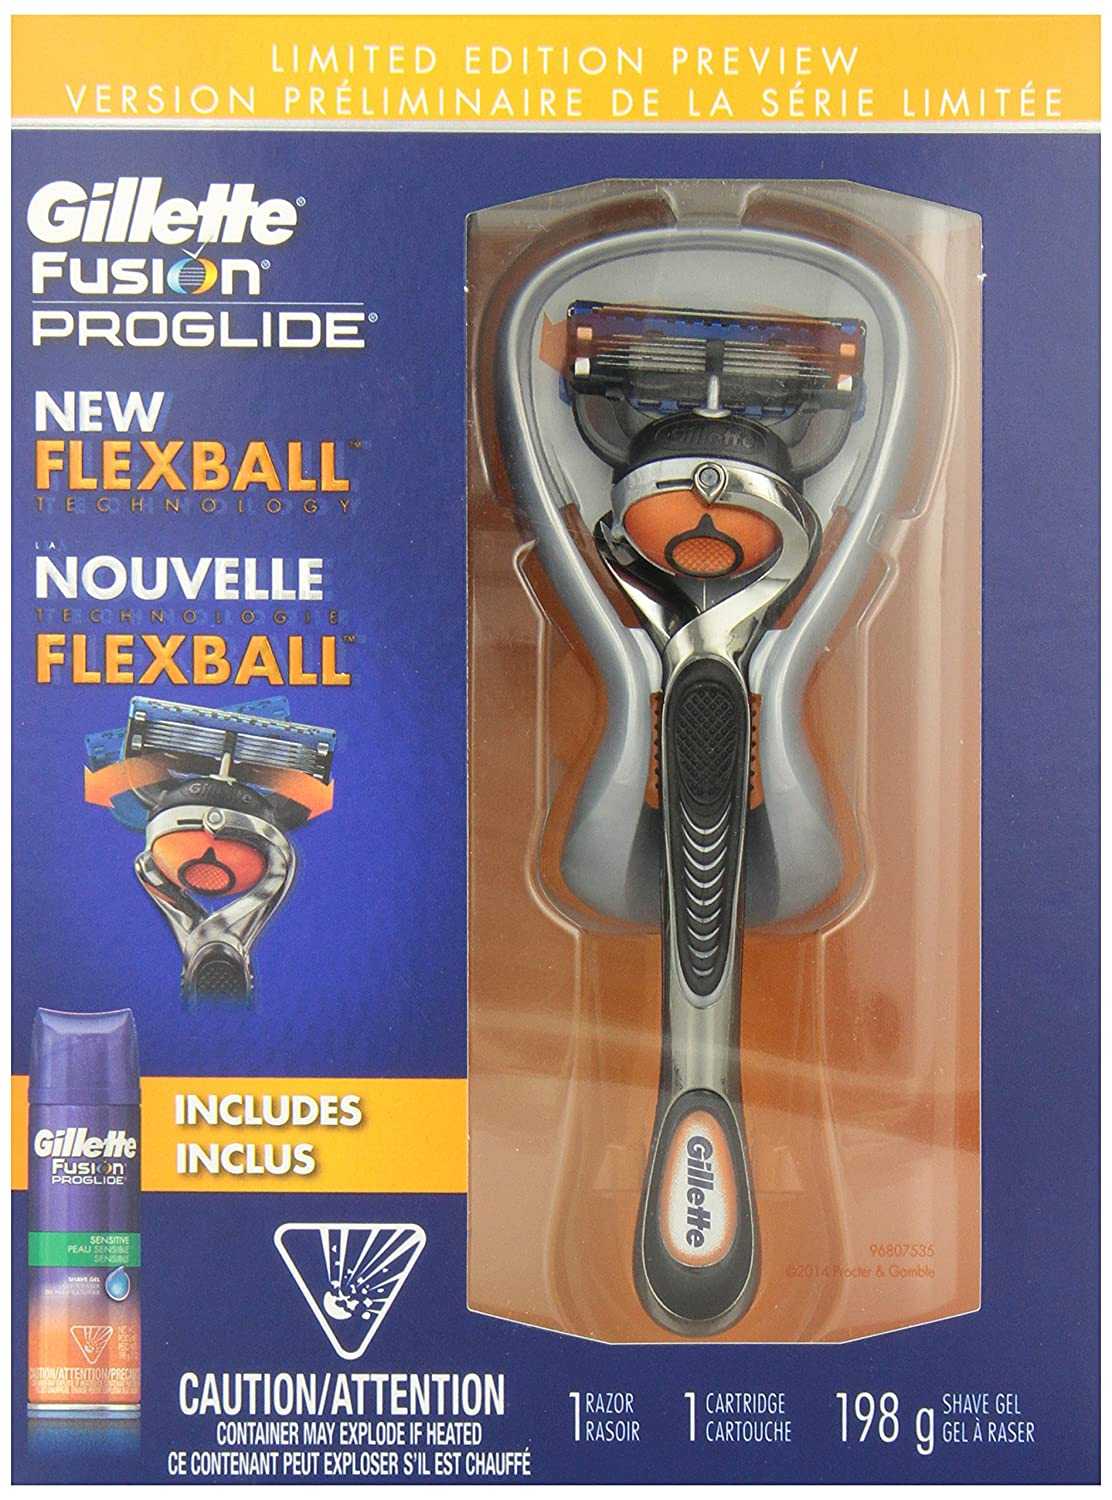 Gillette fusion proglide manual razor with flexball technology - Gillette Fusion Proglide Manual Men S Razor With Flexball Technology With Bonus Shave Gel Sells On Amazon I Think The Price Is Very Good